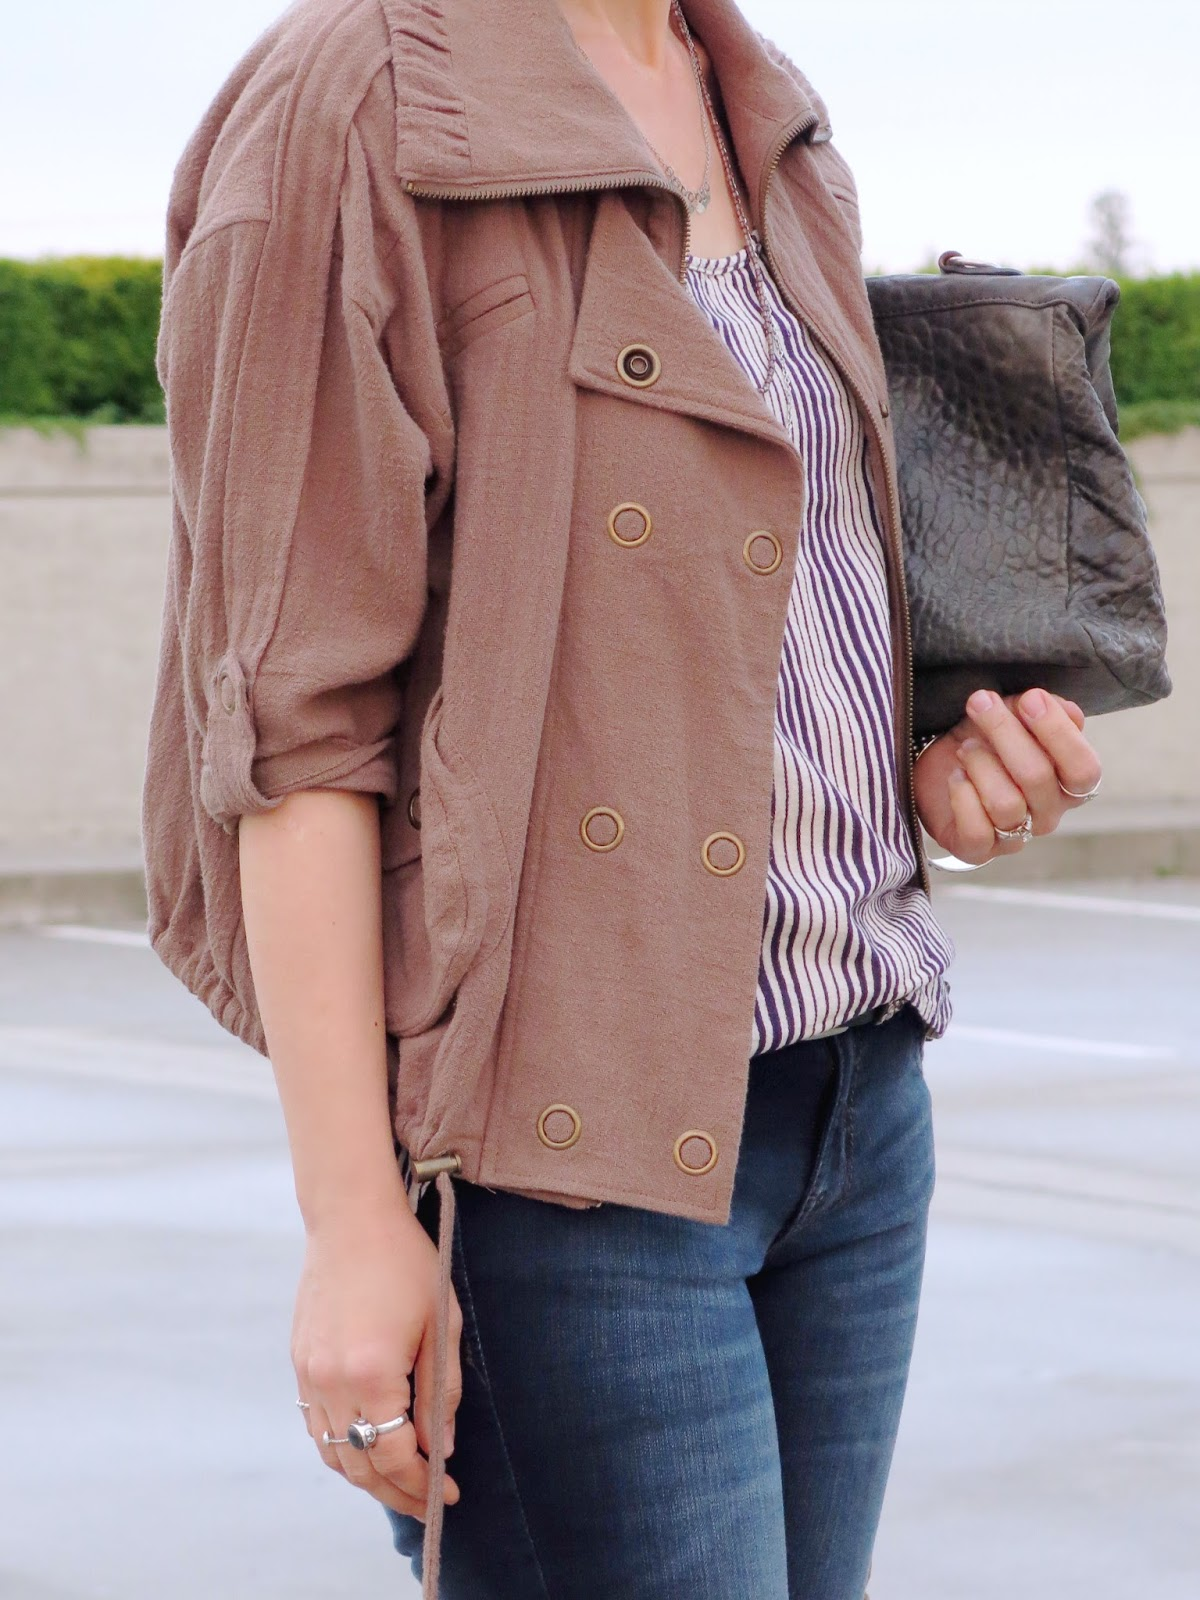 styling skinny jeans with a striped tank and khaki bomber jacket